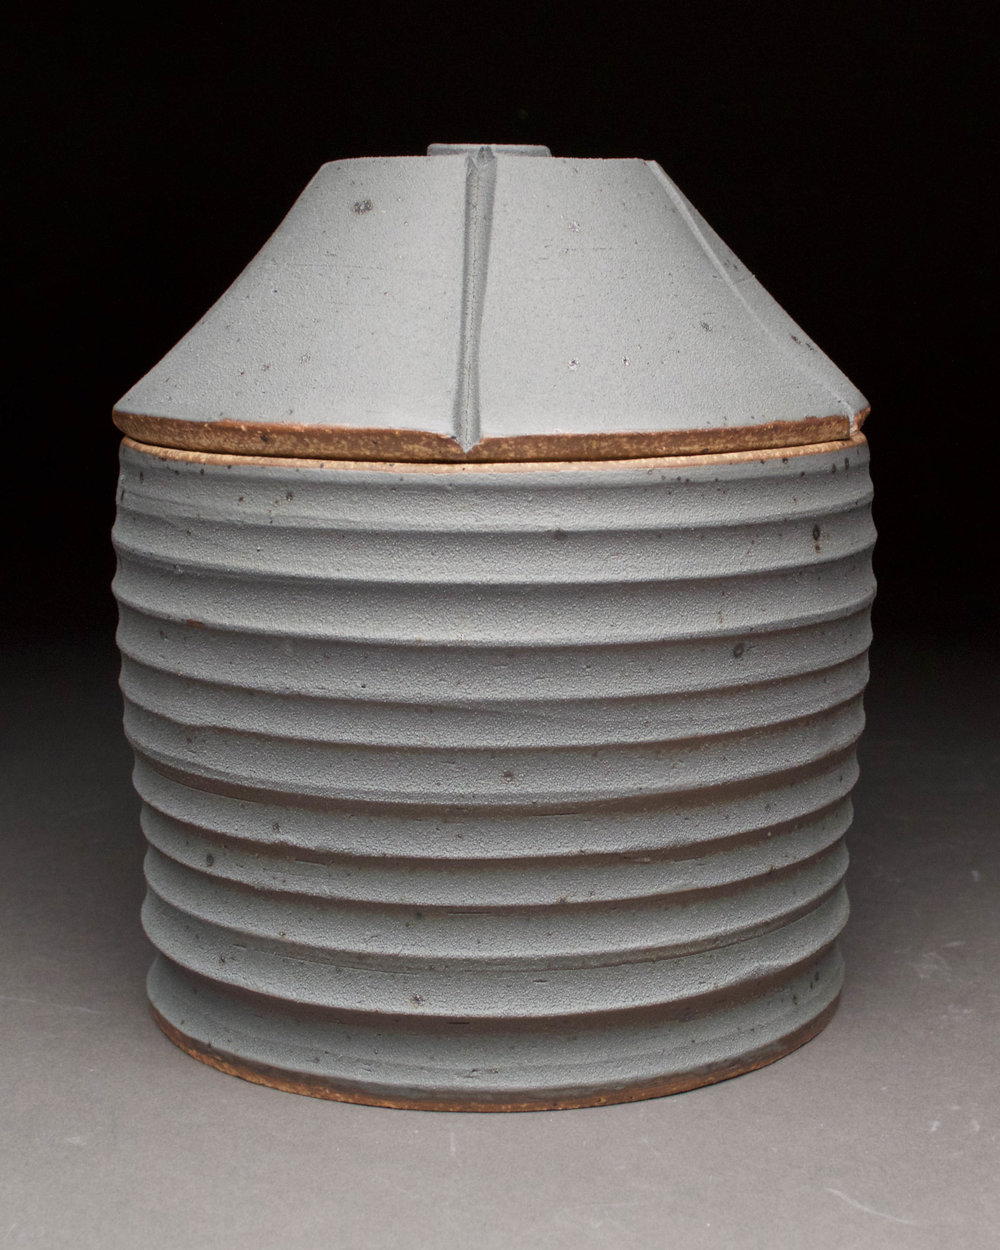 Grain Bin Jar #1  5.5x5.5x6.5  ceramic  $50